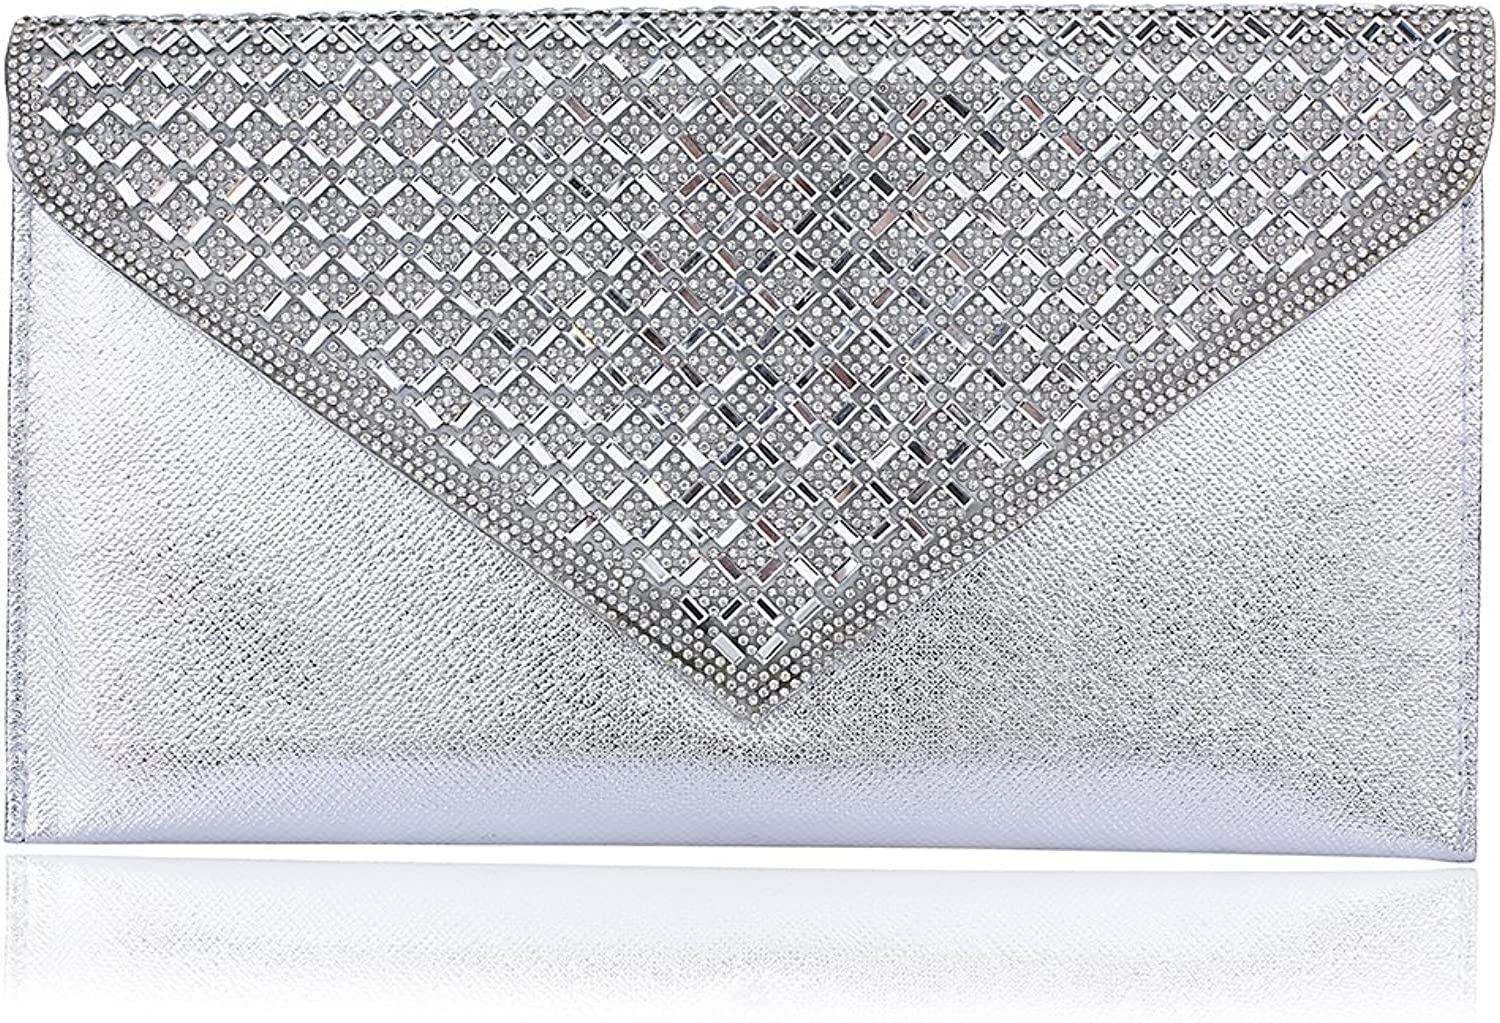 Womens Satin Pleated Evening Purse,WALLYN'S Elegant Clutch Bag Party Prom Envelope